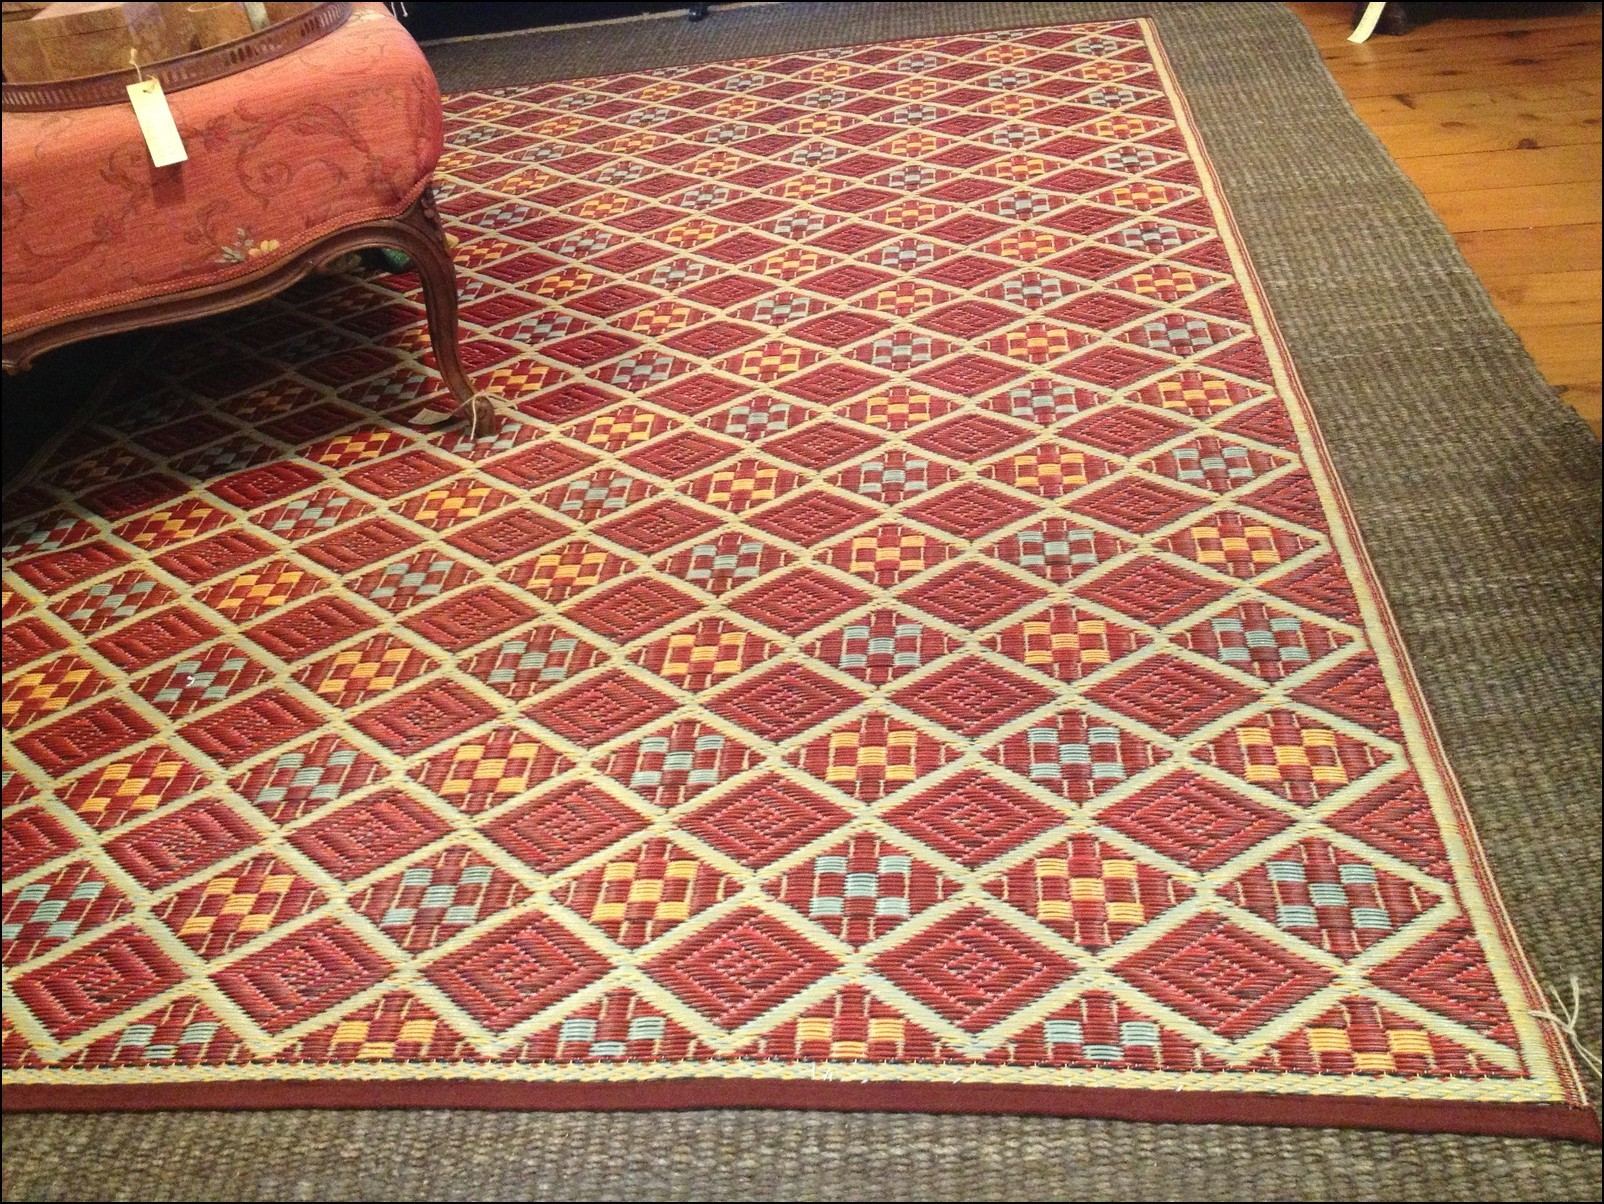 Cheap Area Rugs 8x10 Under $100